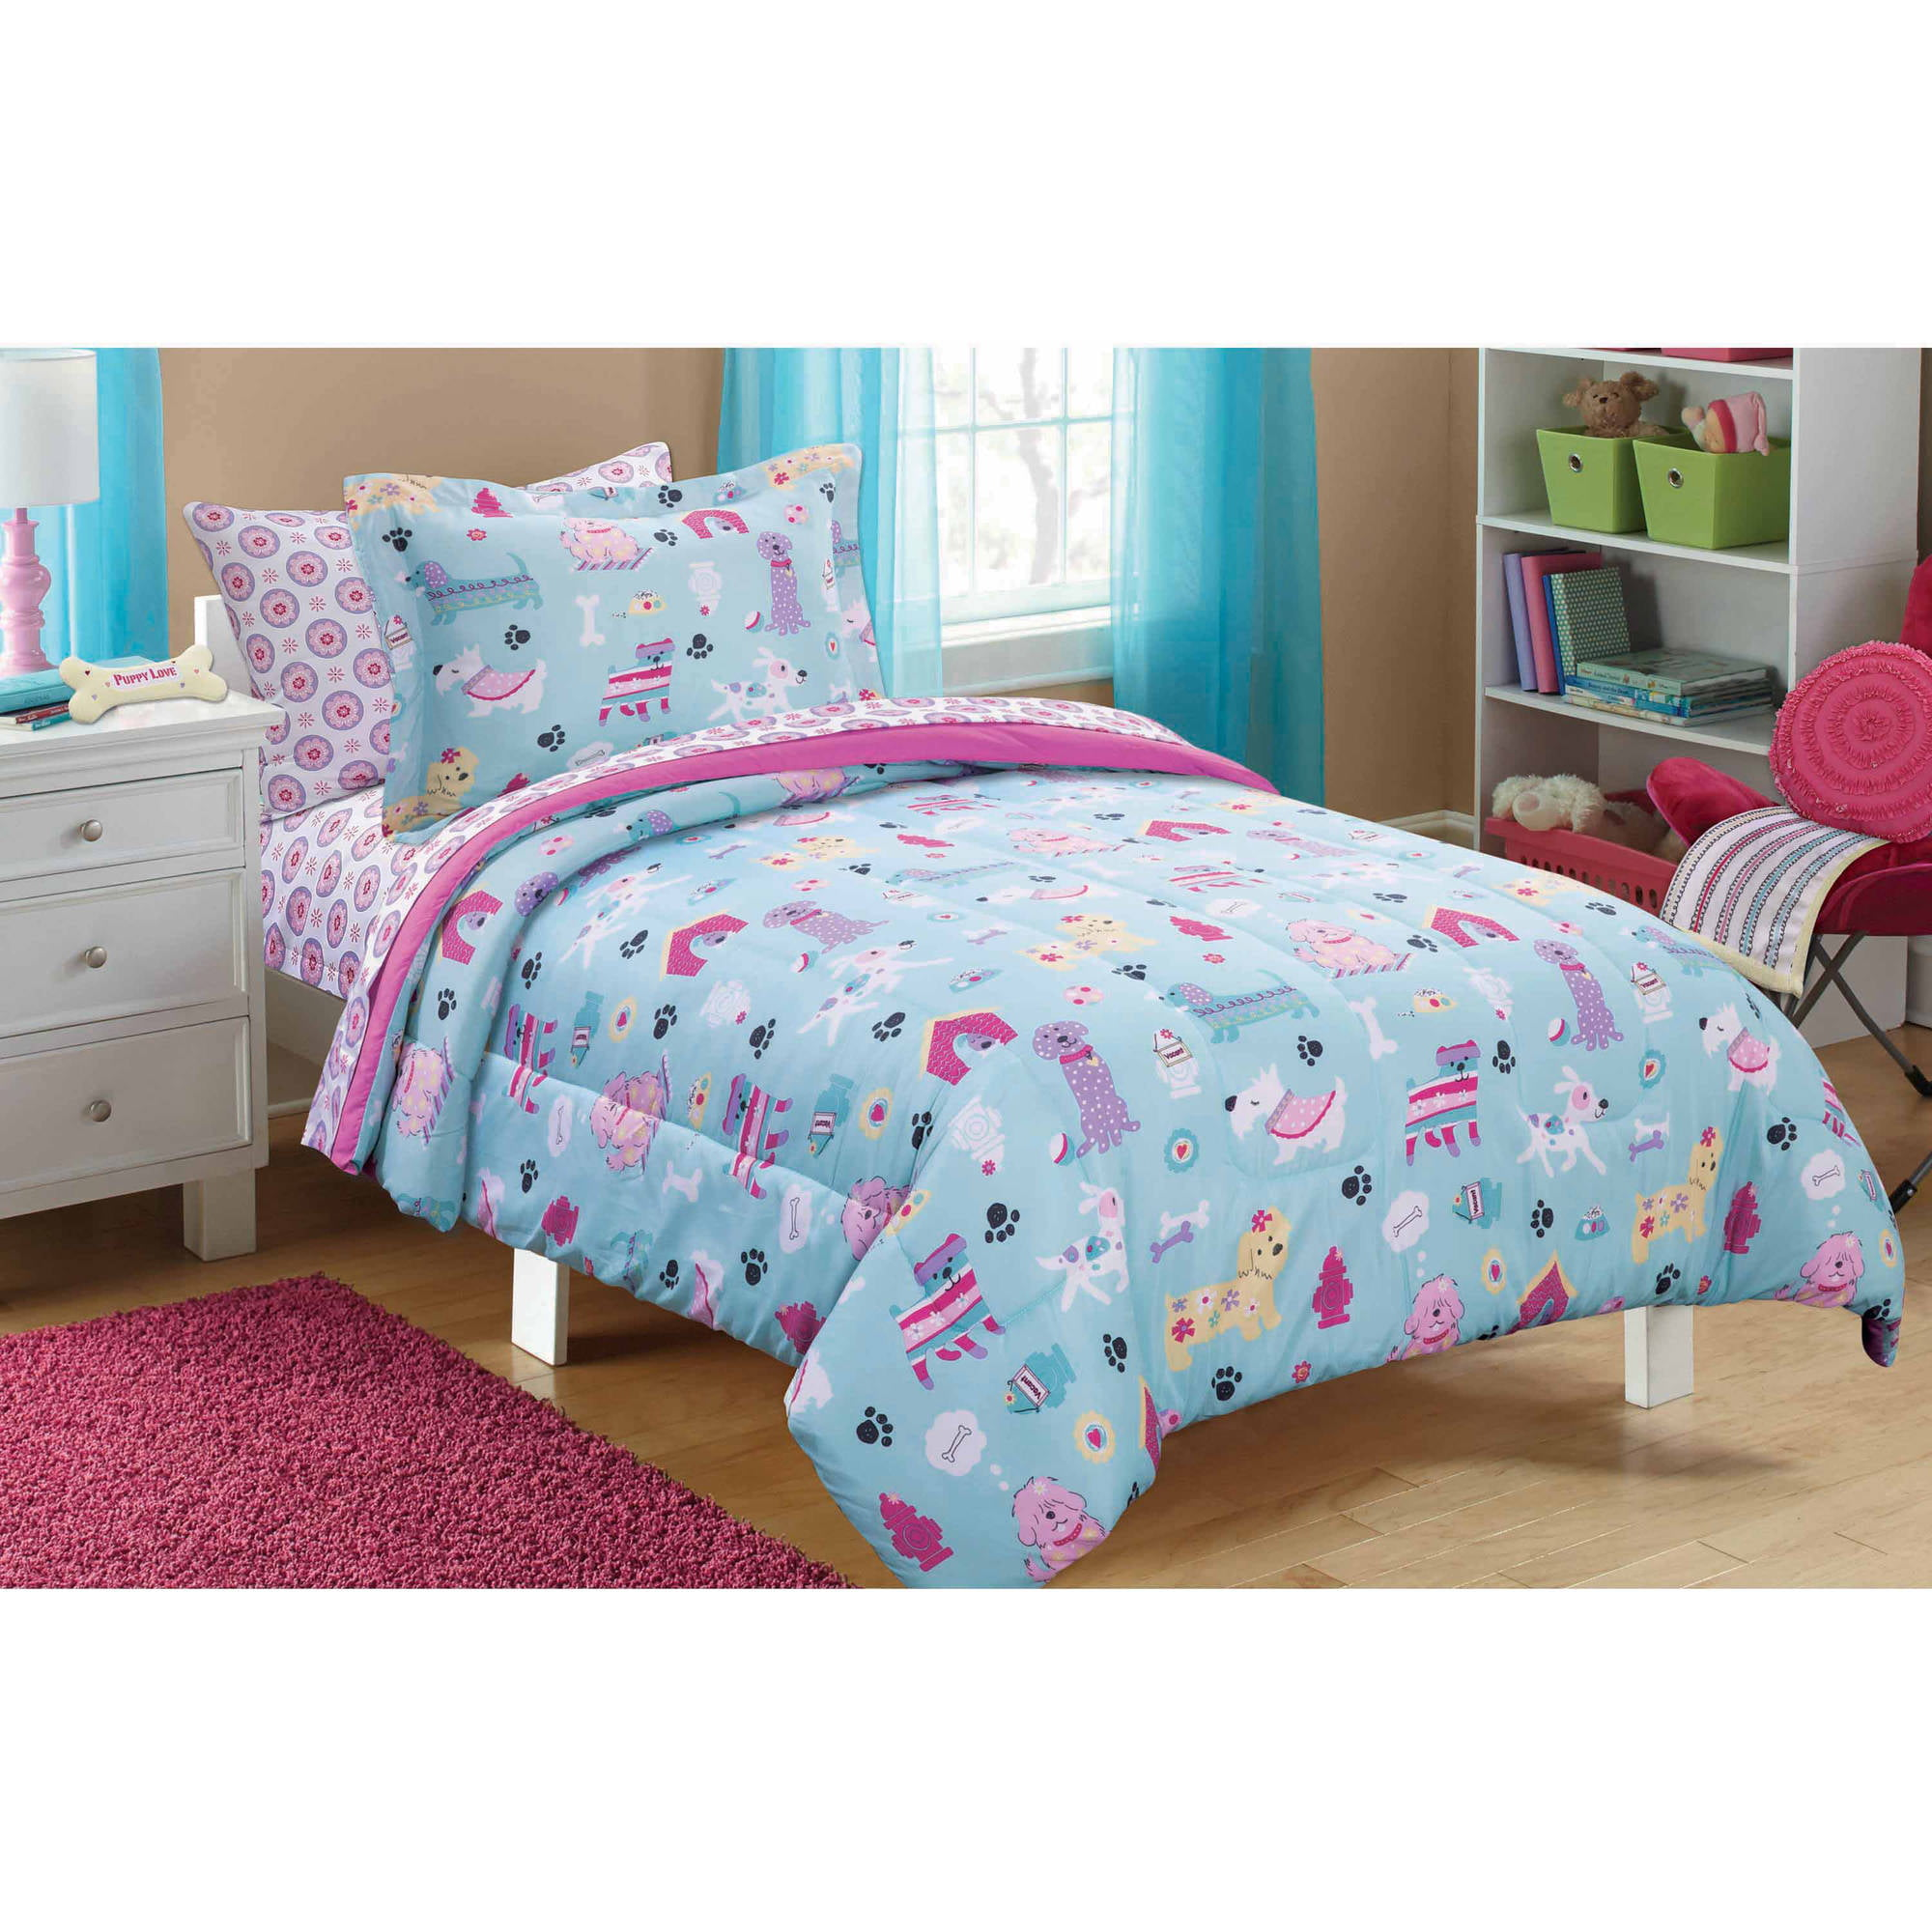 comforters pin a in comforter seventeen s bath set full bed queen ombre ikat macy bag